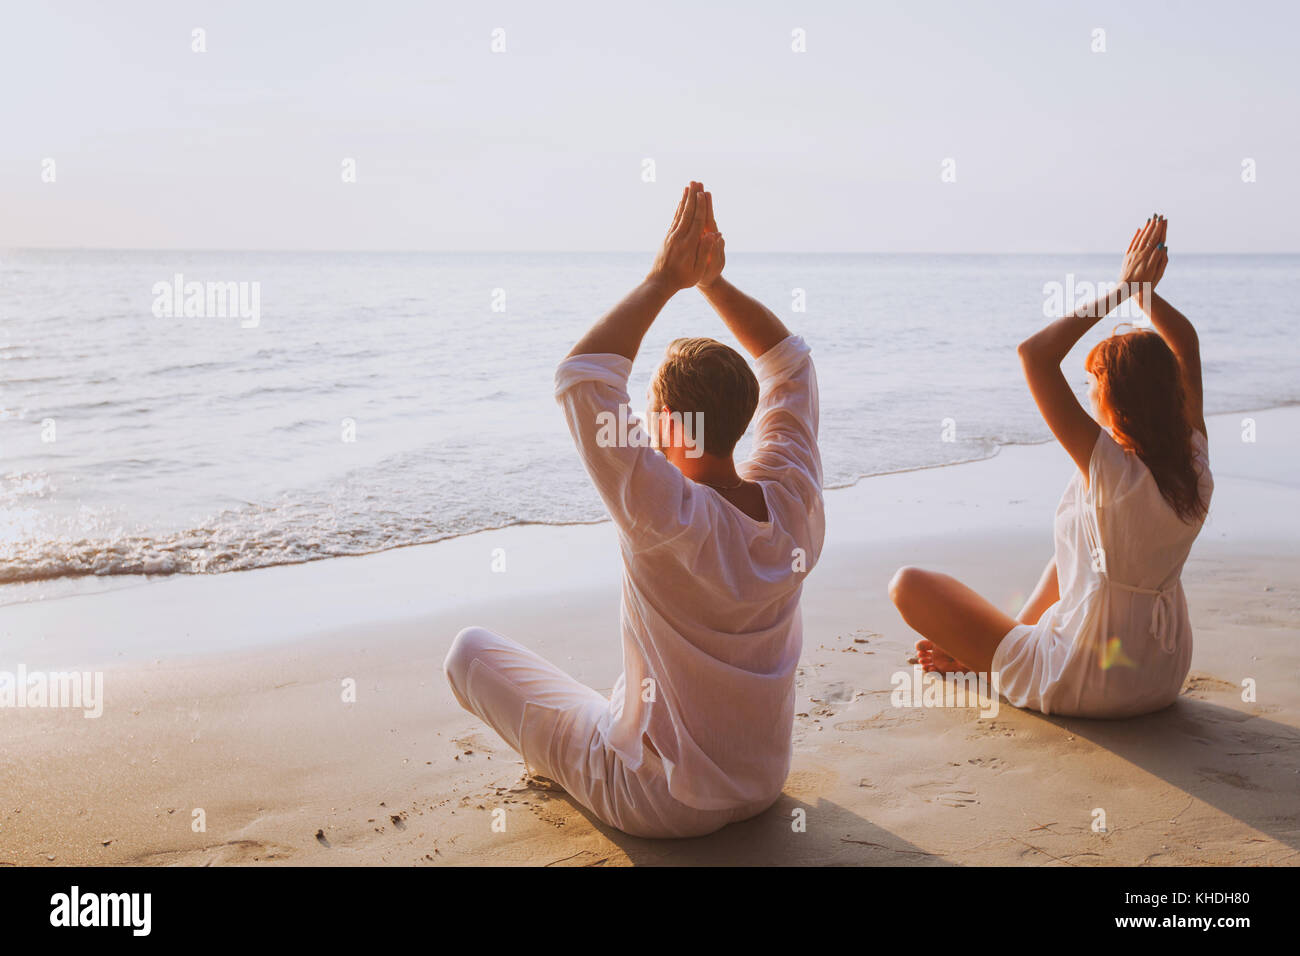 group meditation, yoga on the beach at sunset - Stock Image